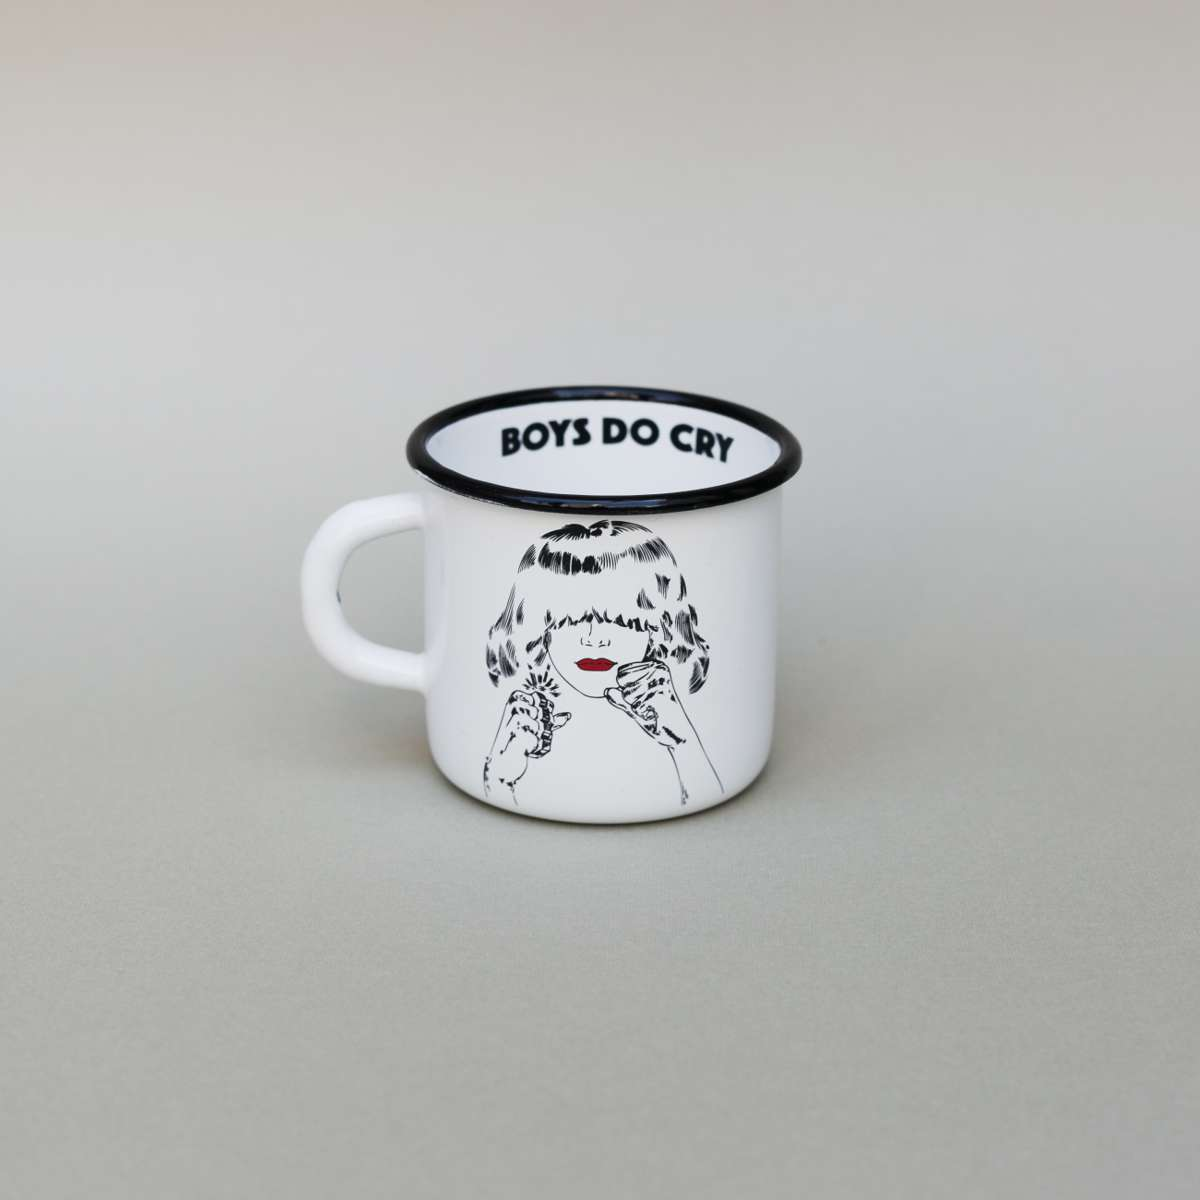 Boys Do Cry Mug - Carnival Youth